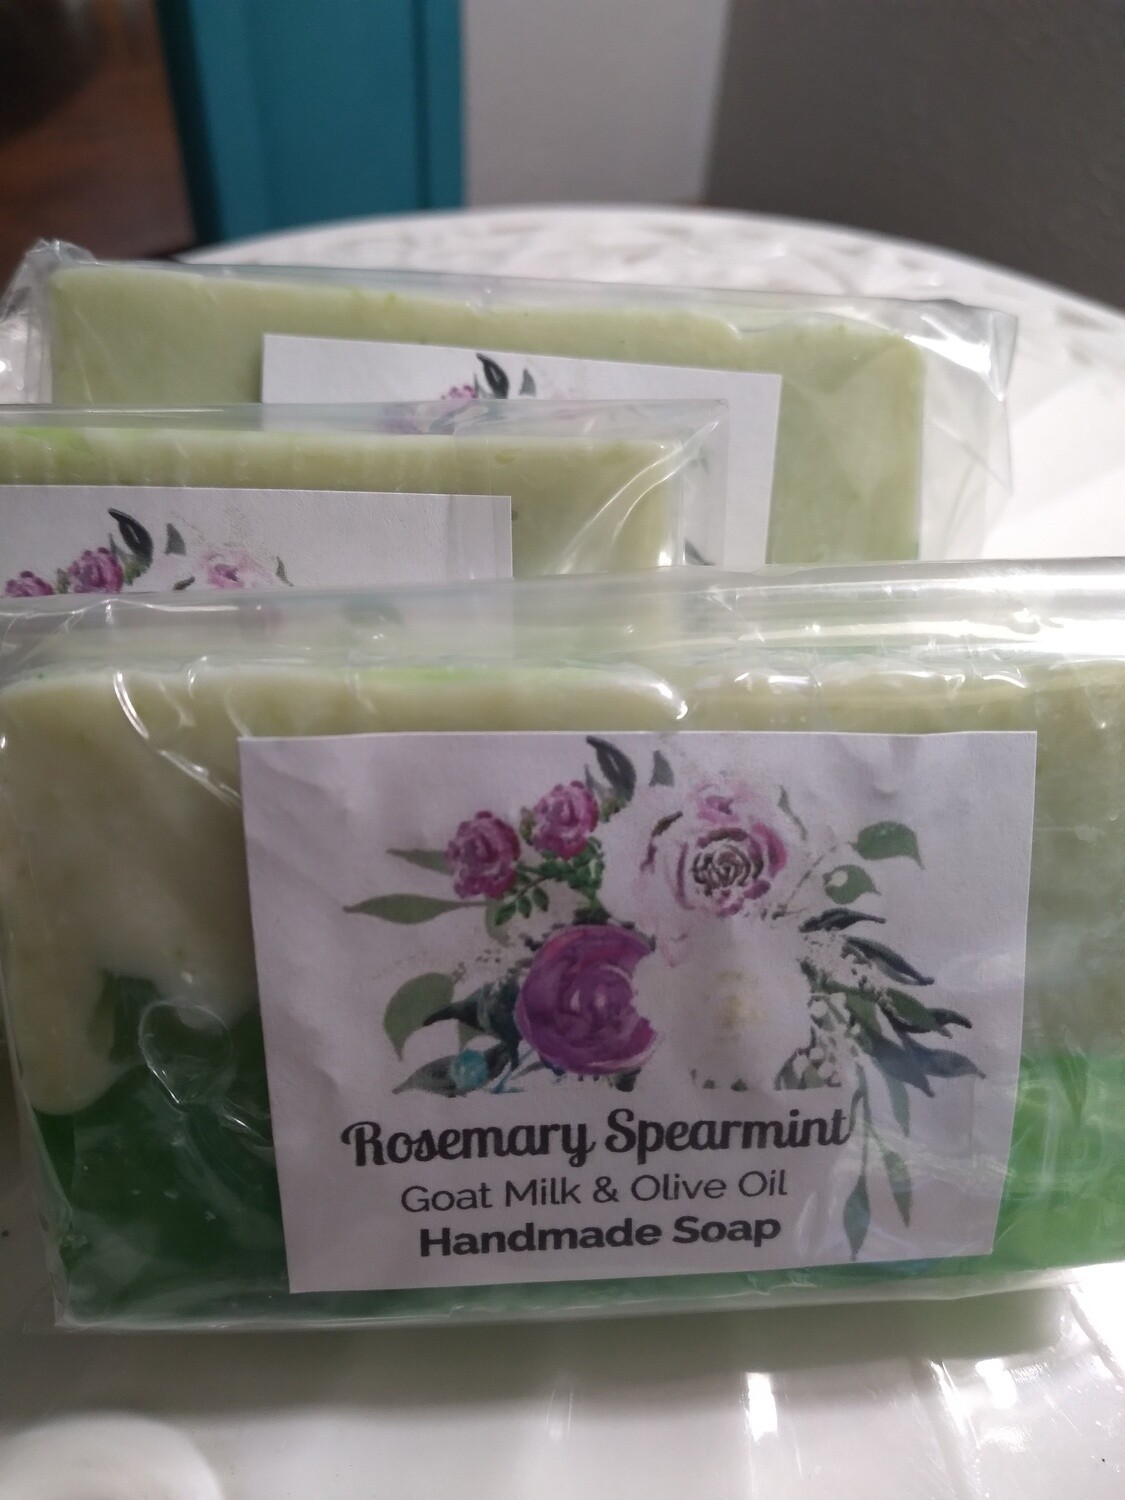 Rosemary Spearmint